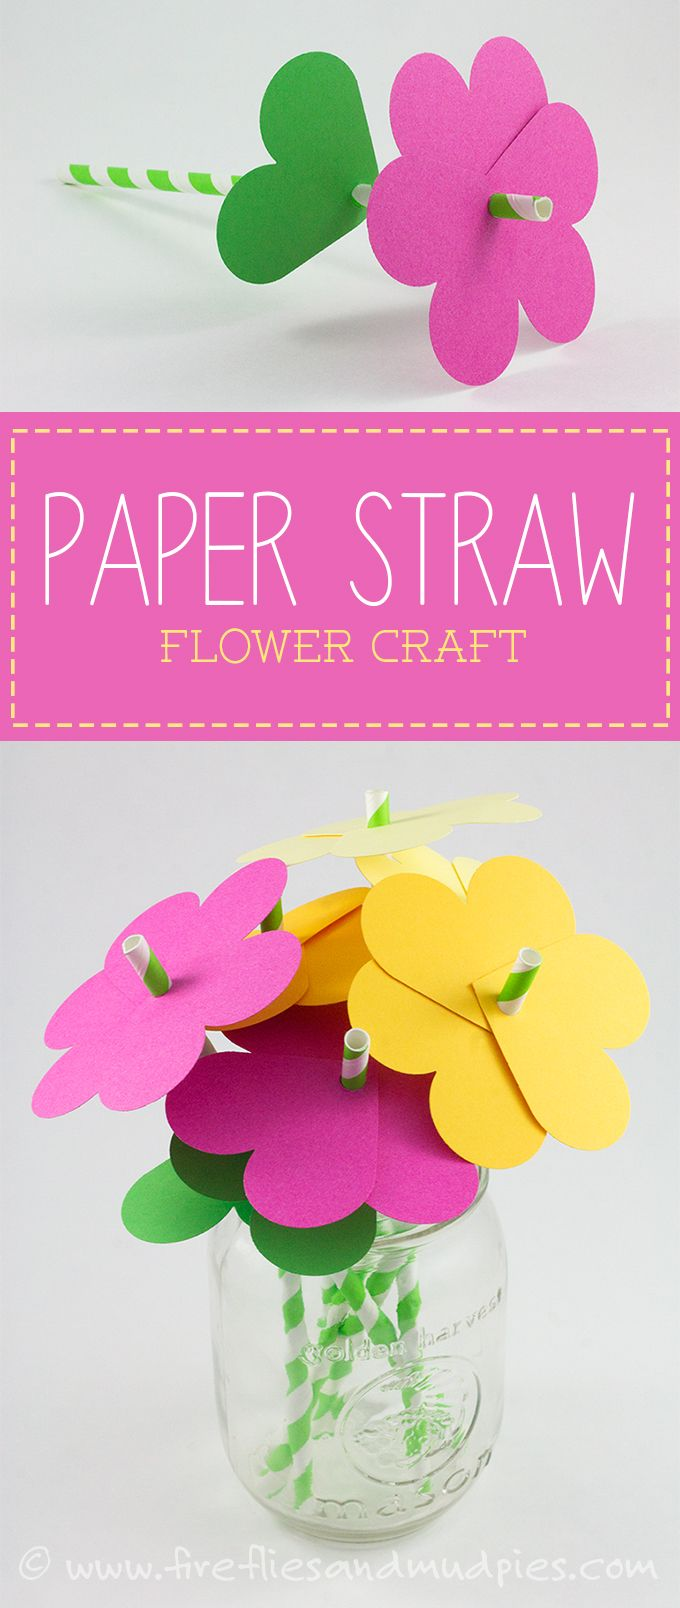 Craft Flowers For Kids Part - 16: Paper Straw Flower Craft U2014 Perfect For Spring! | Fireflies And Mud Pies